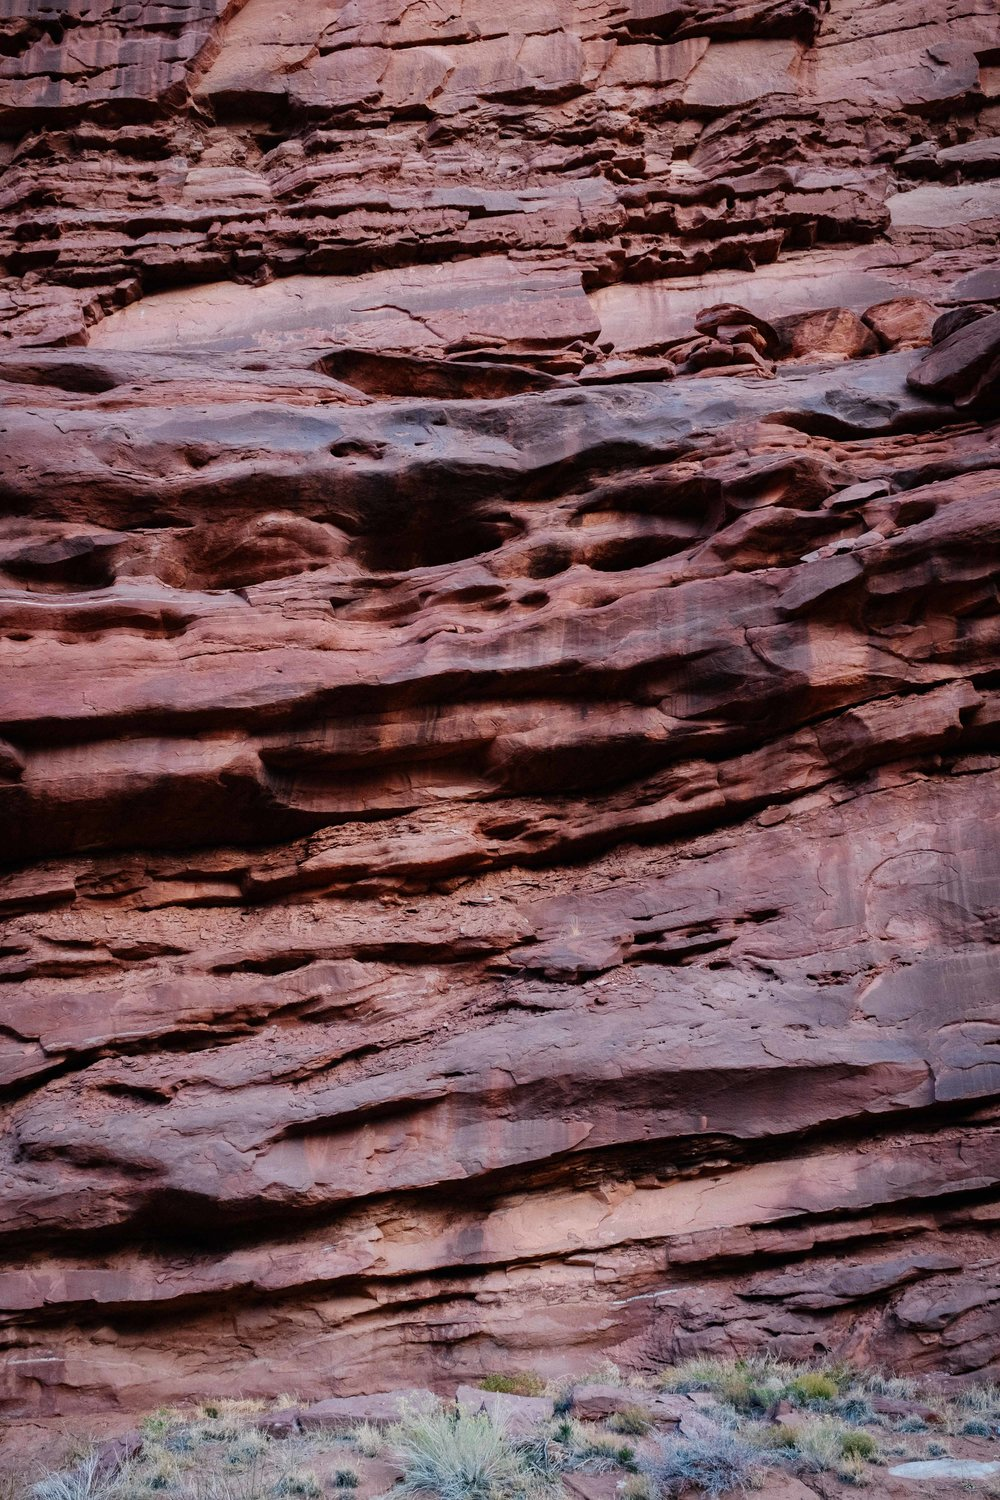 Textures of the canyon walls along Onion Creek Road. Fuji X100F